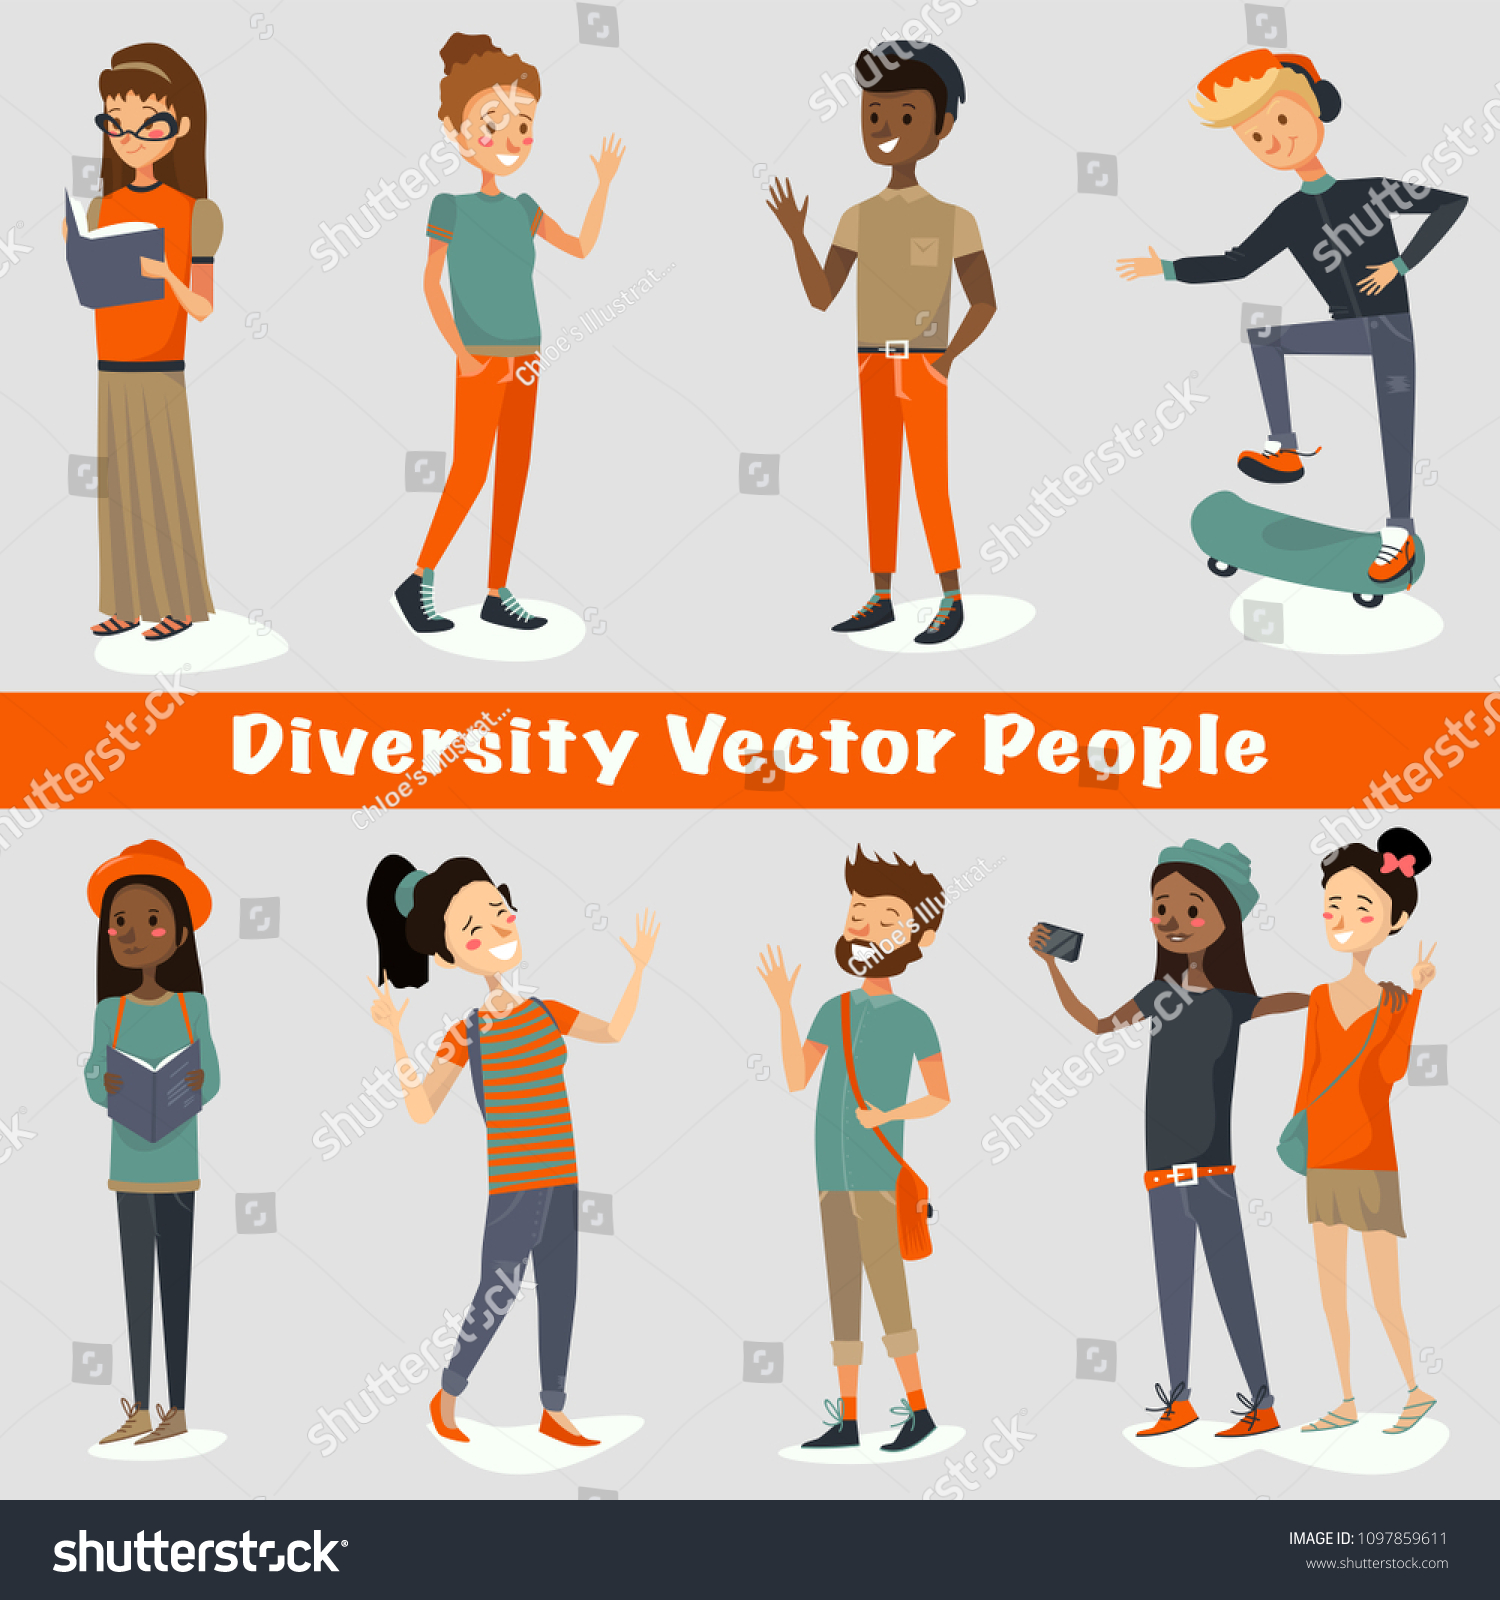 stock-vector-diversity-people-vector-ill